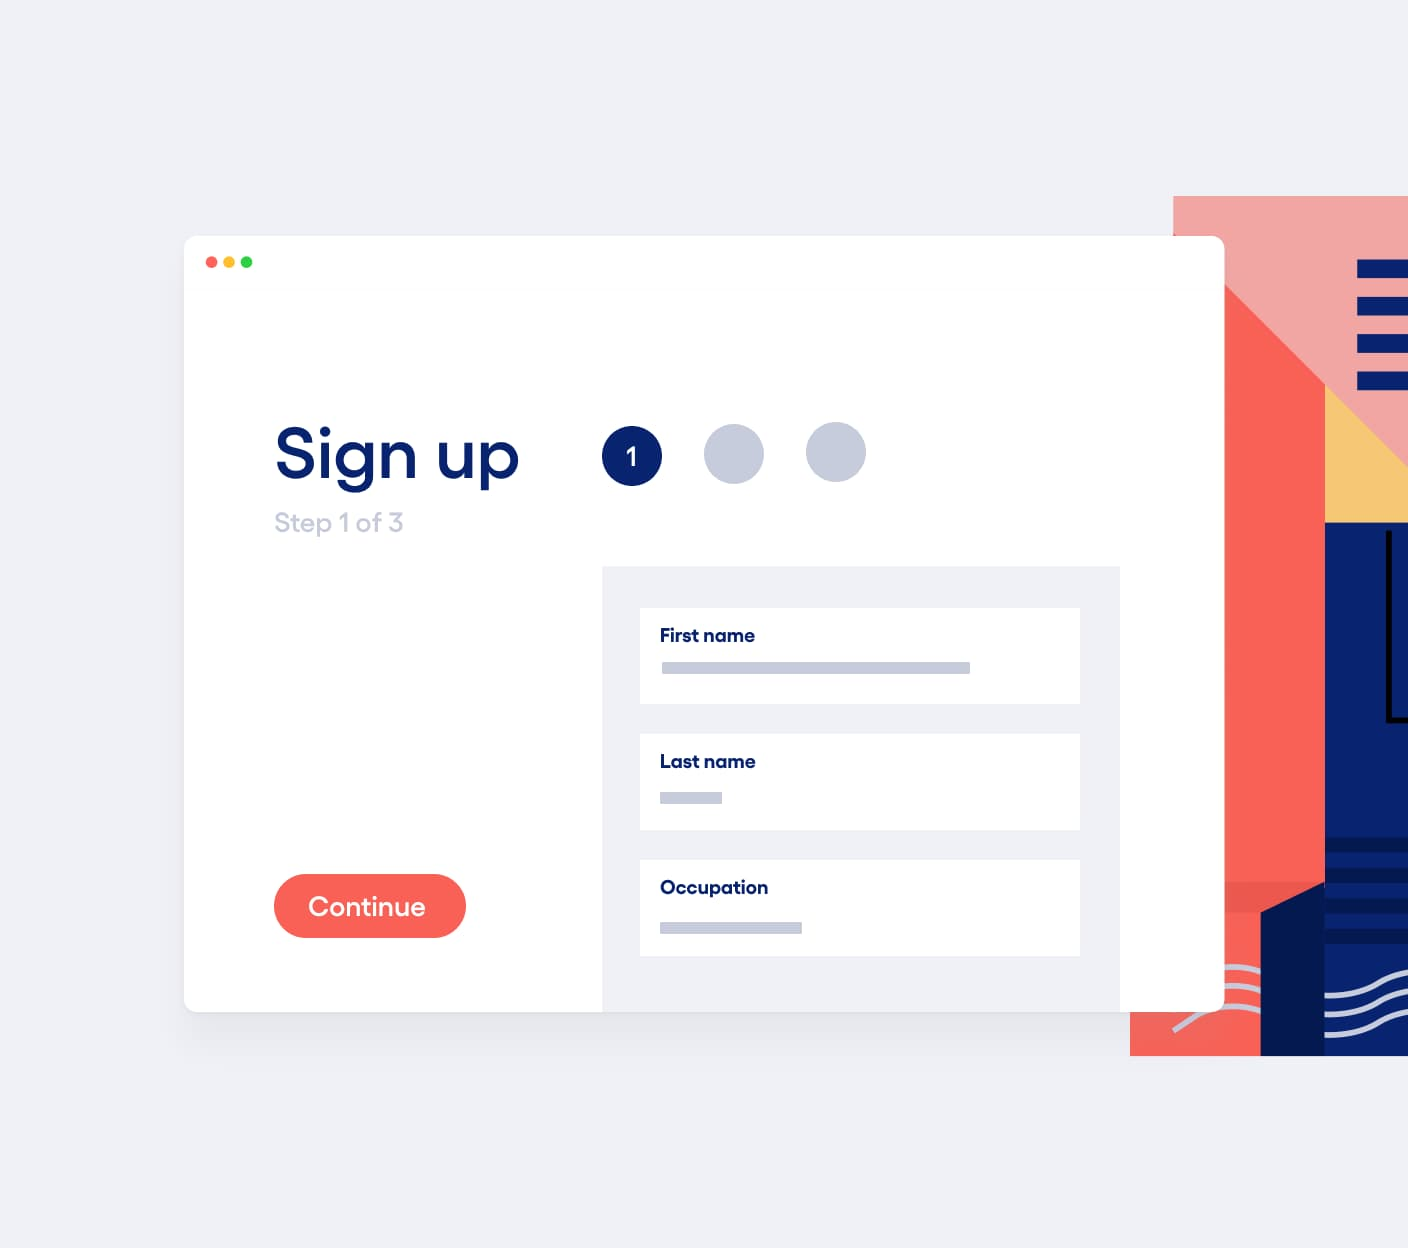 Image of sign up